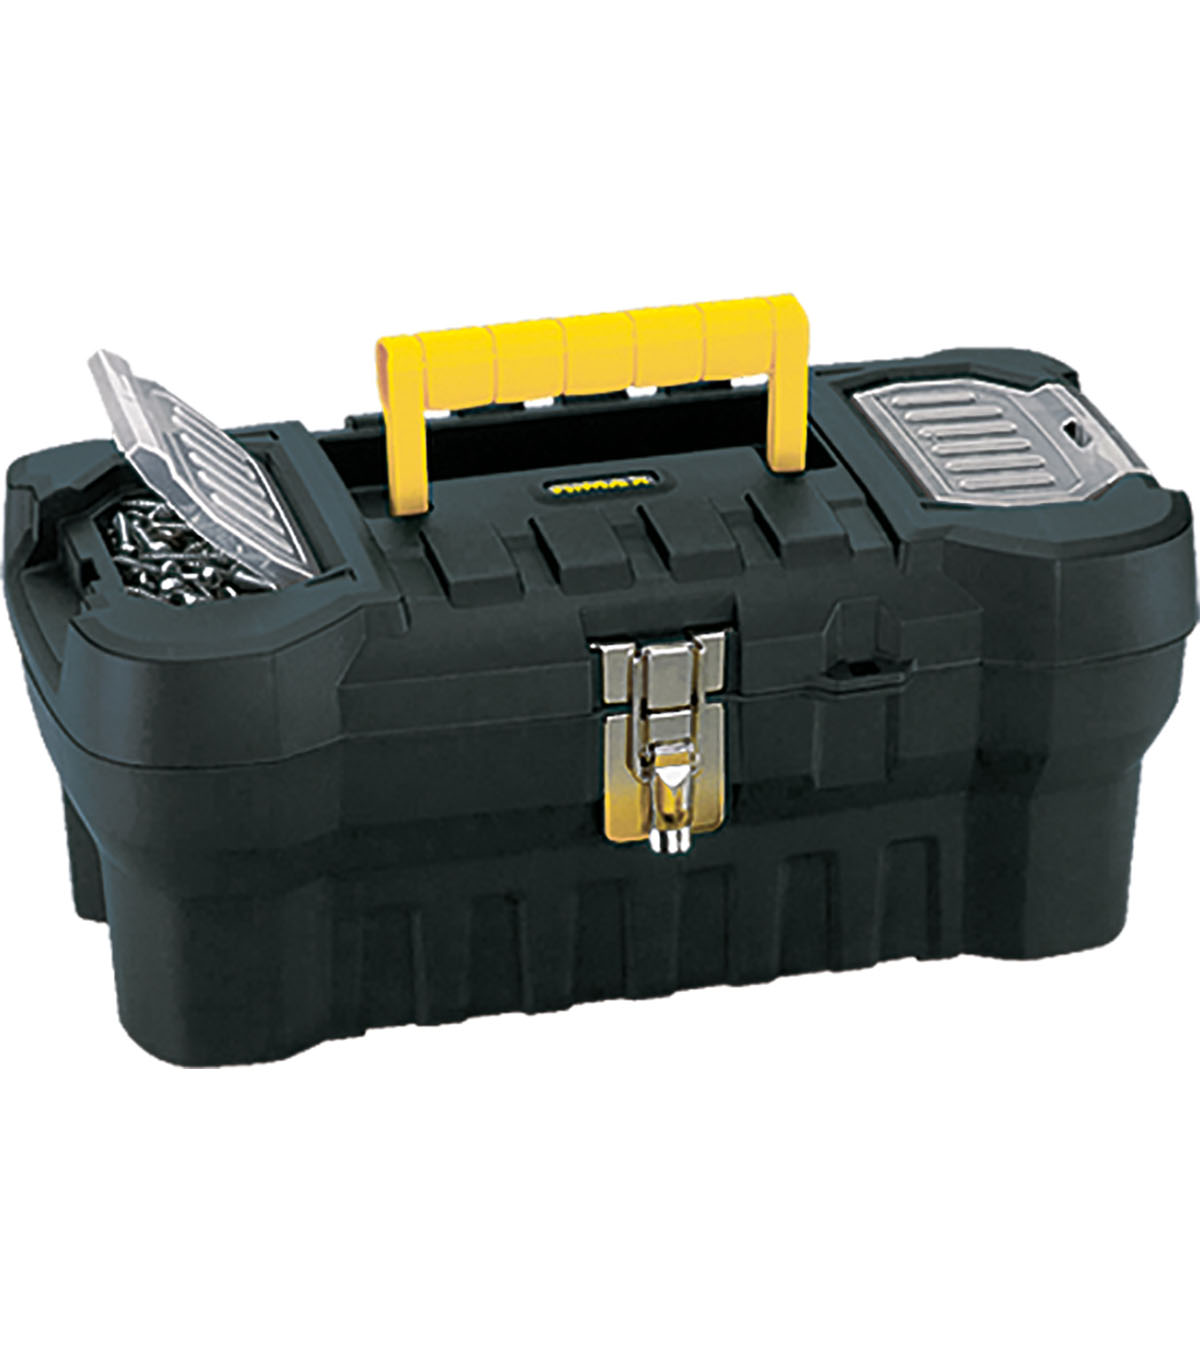 Rimax 16\u0027\u0027x7.25\u0027\u0027x8\u0027\u0027 Heavy Duty Toolbox-Black & Yellow